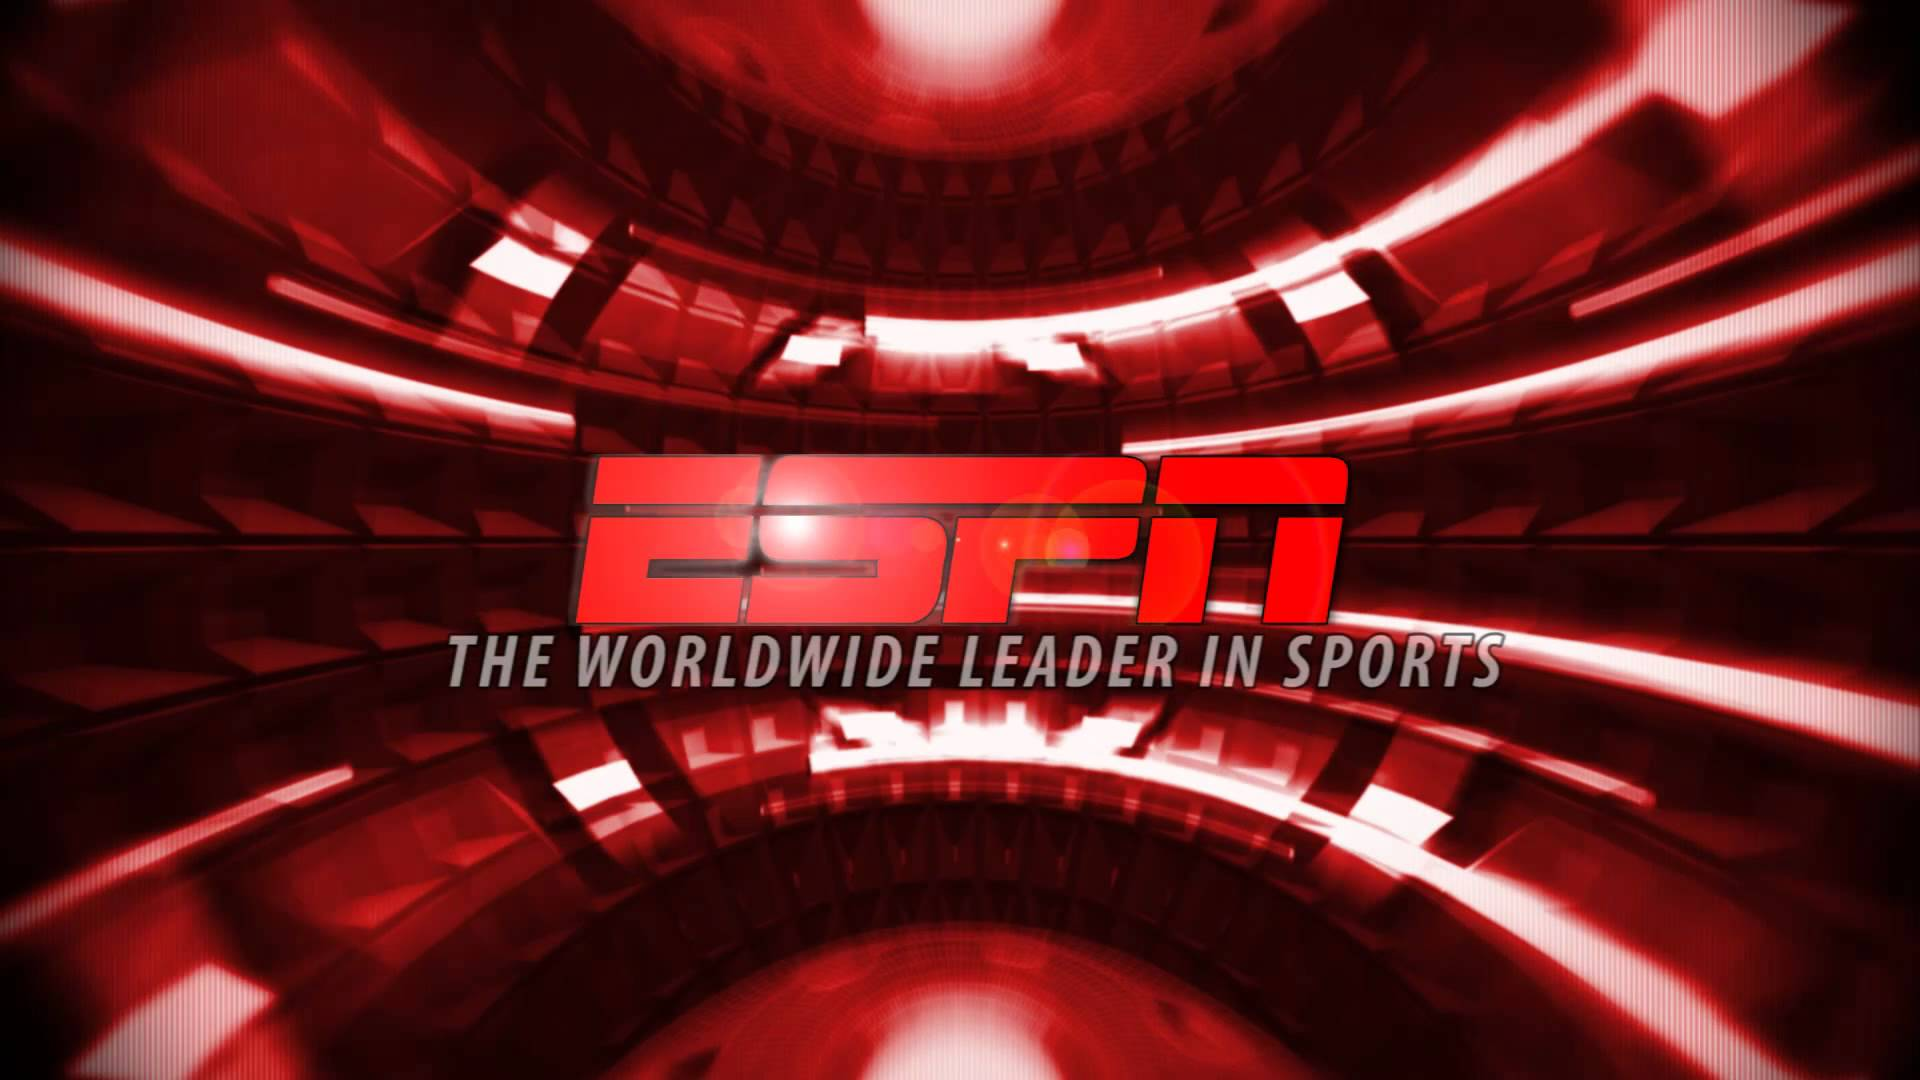 Espn Is Struggling Fitsnews   Espn Entertainment And Sports 1920x1080